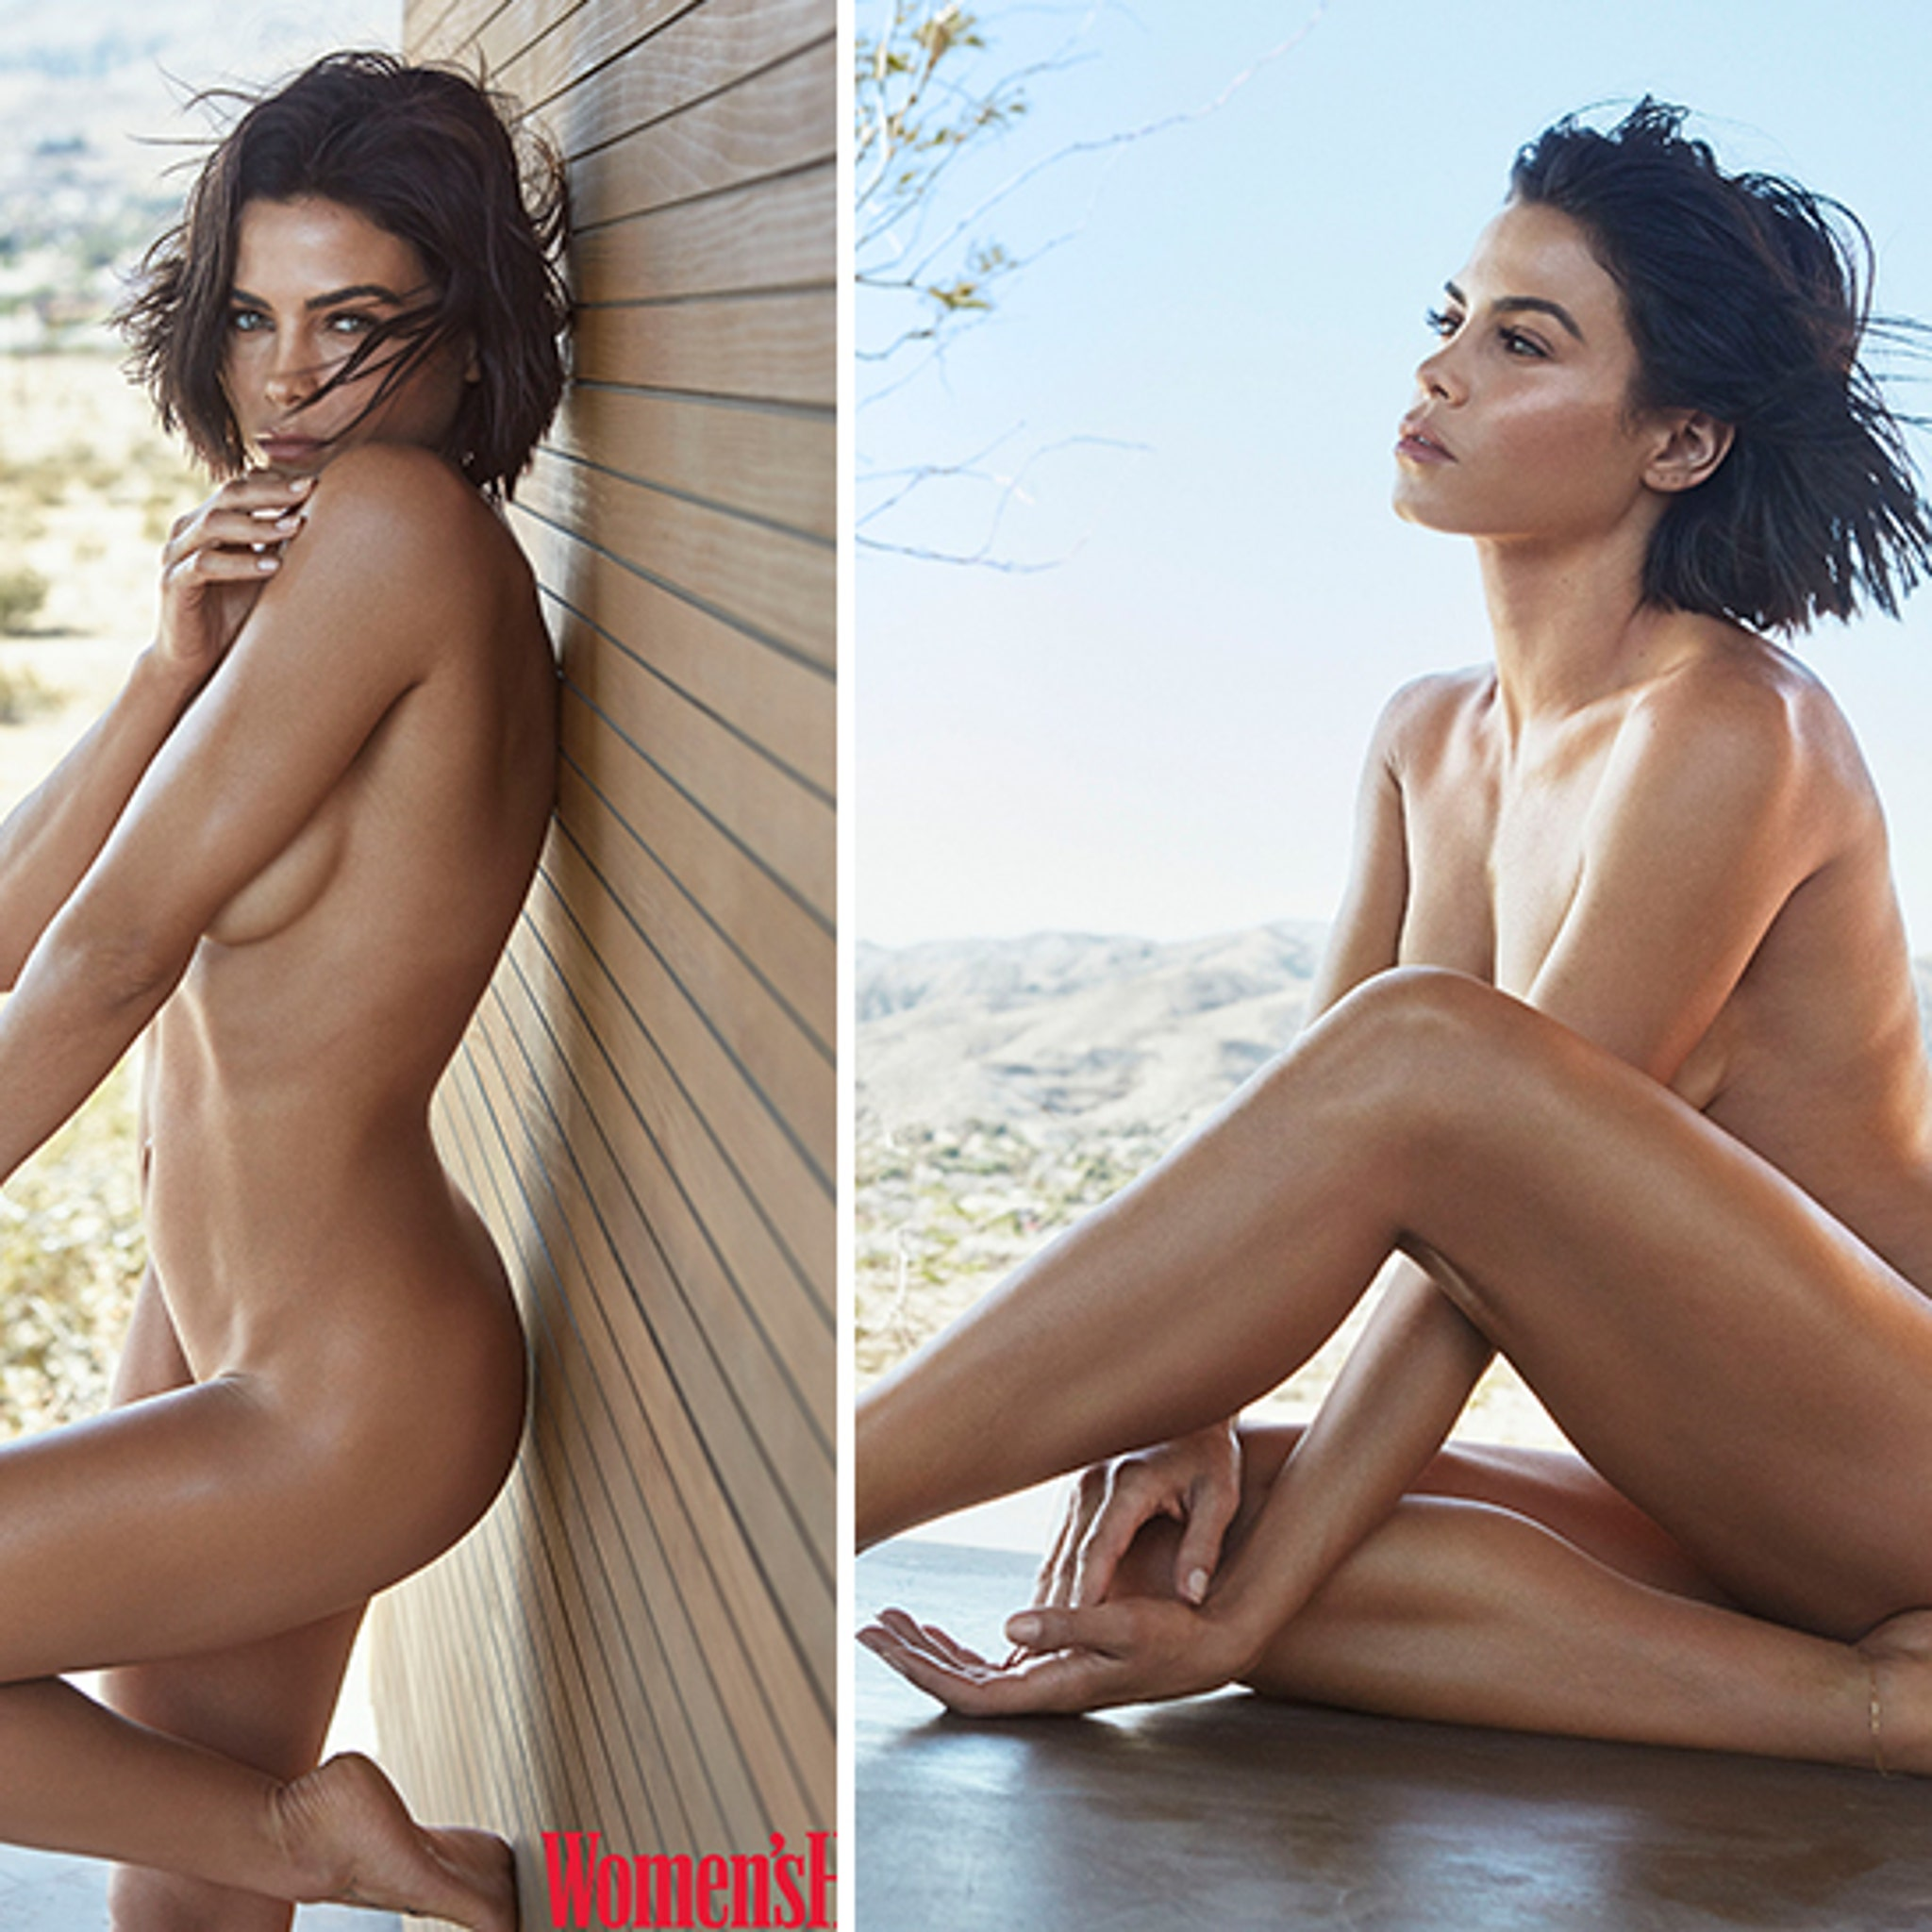 Jenna Dewan Goes Fully Nude for Women's Health